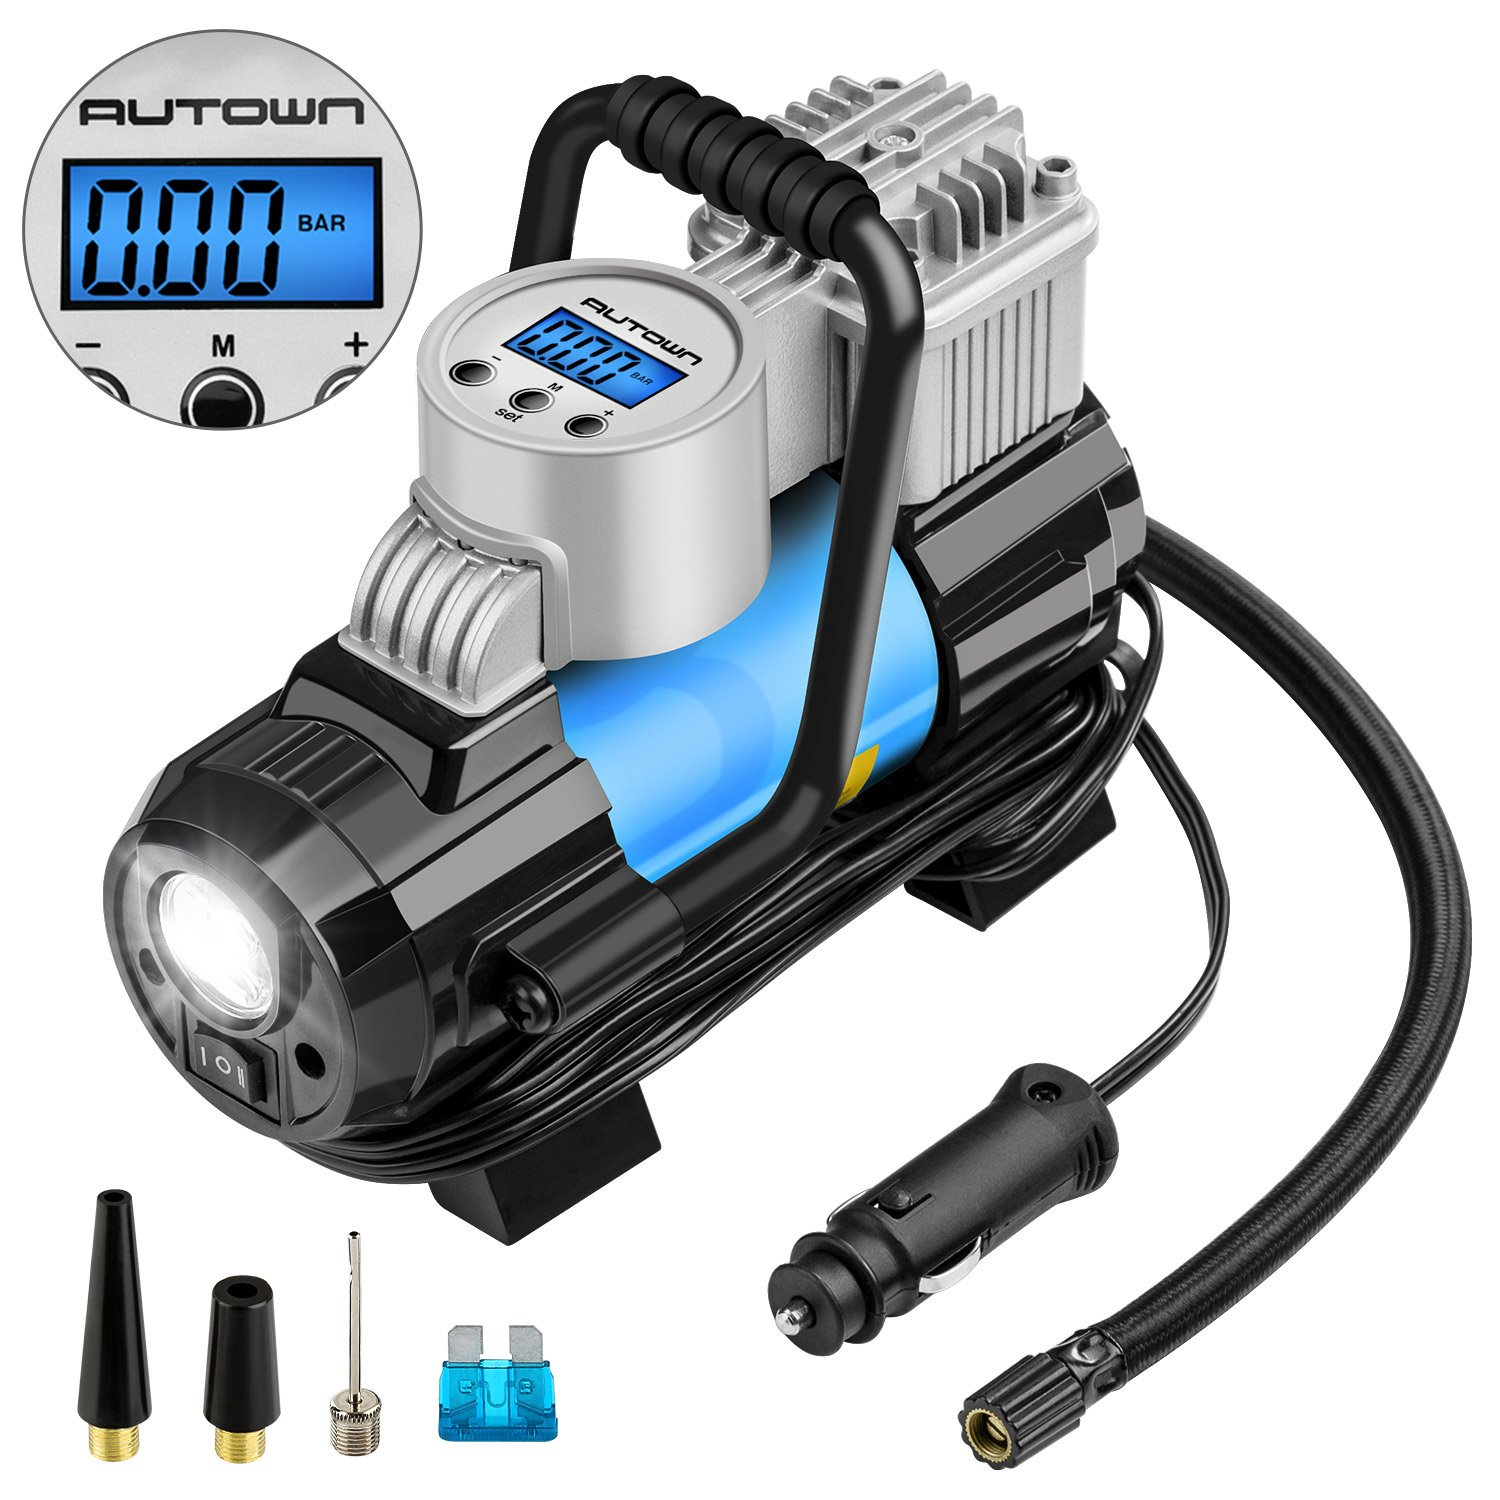 AUTOWN 12V DC Portable Air Compressor Pump, 150 PSI Auto Digital Tire Inflator with Extra Nozzle Adaptors and Fuse for Car Bike Tires and Other Automobiles. Digital Car Tire Inflator